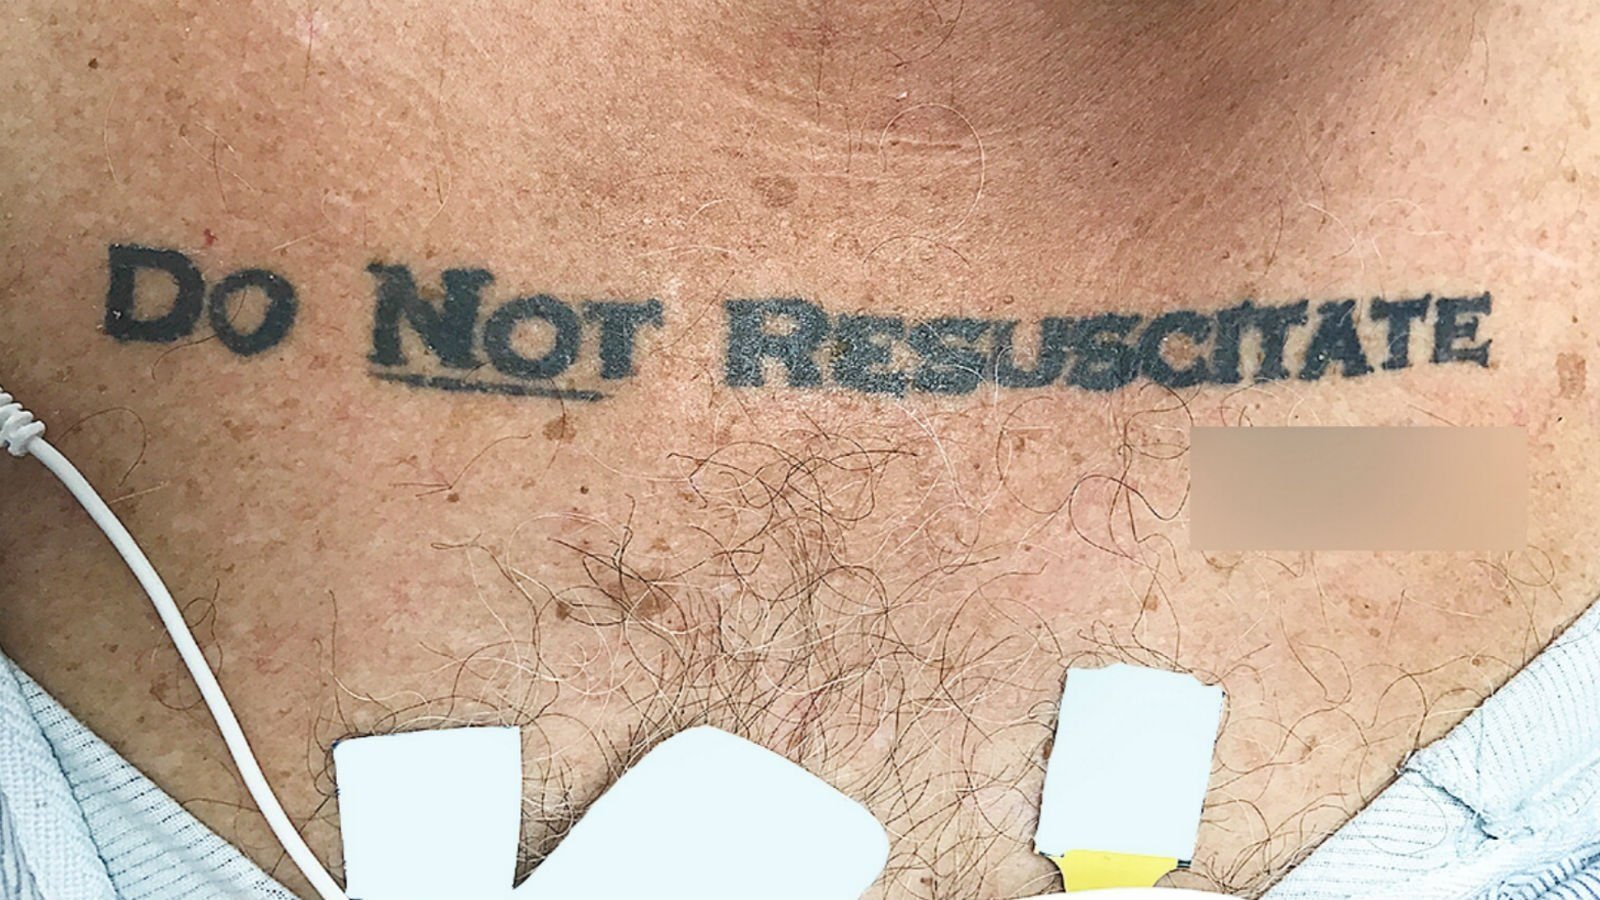 Doctors taken aback by unconscious patient's 'do not resuscitate' tattoo